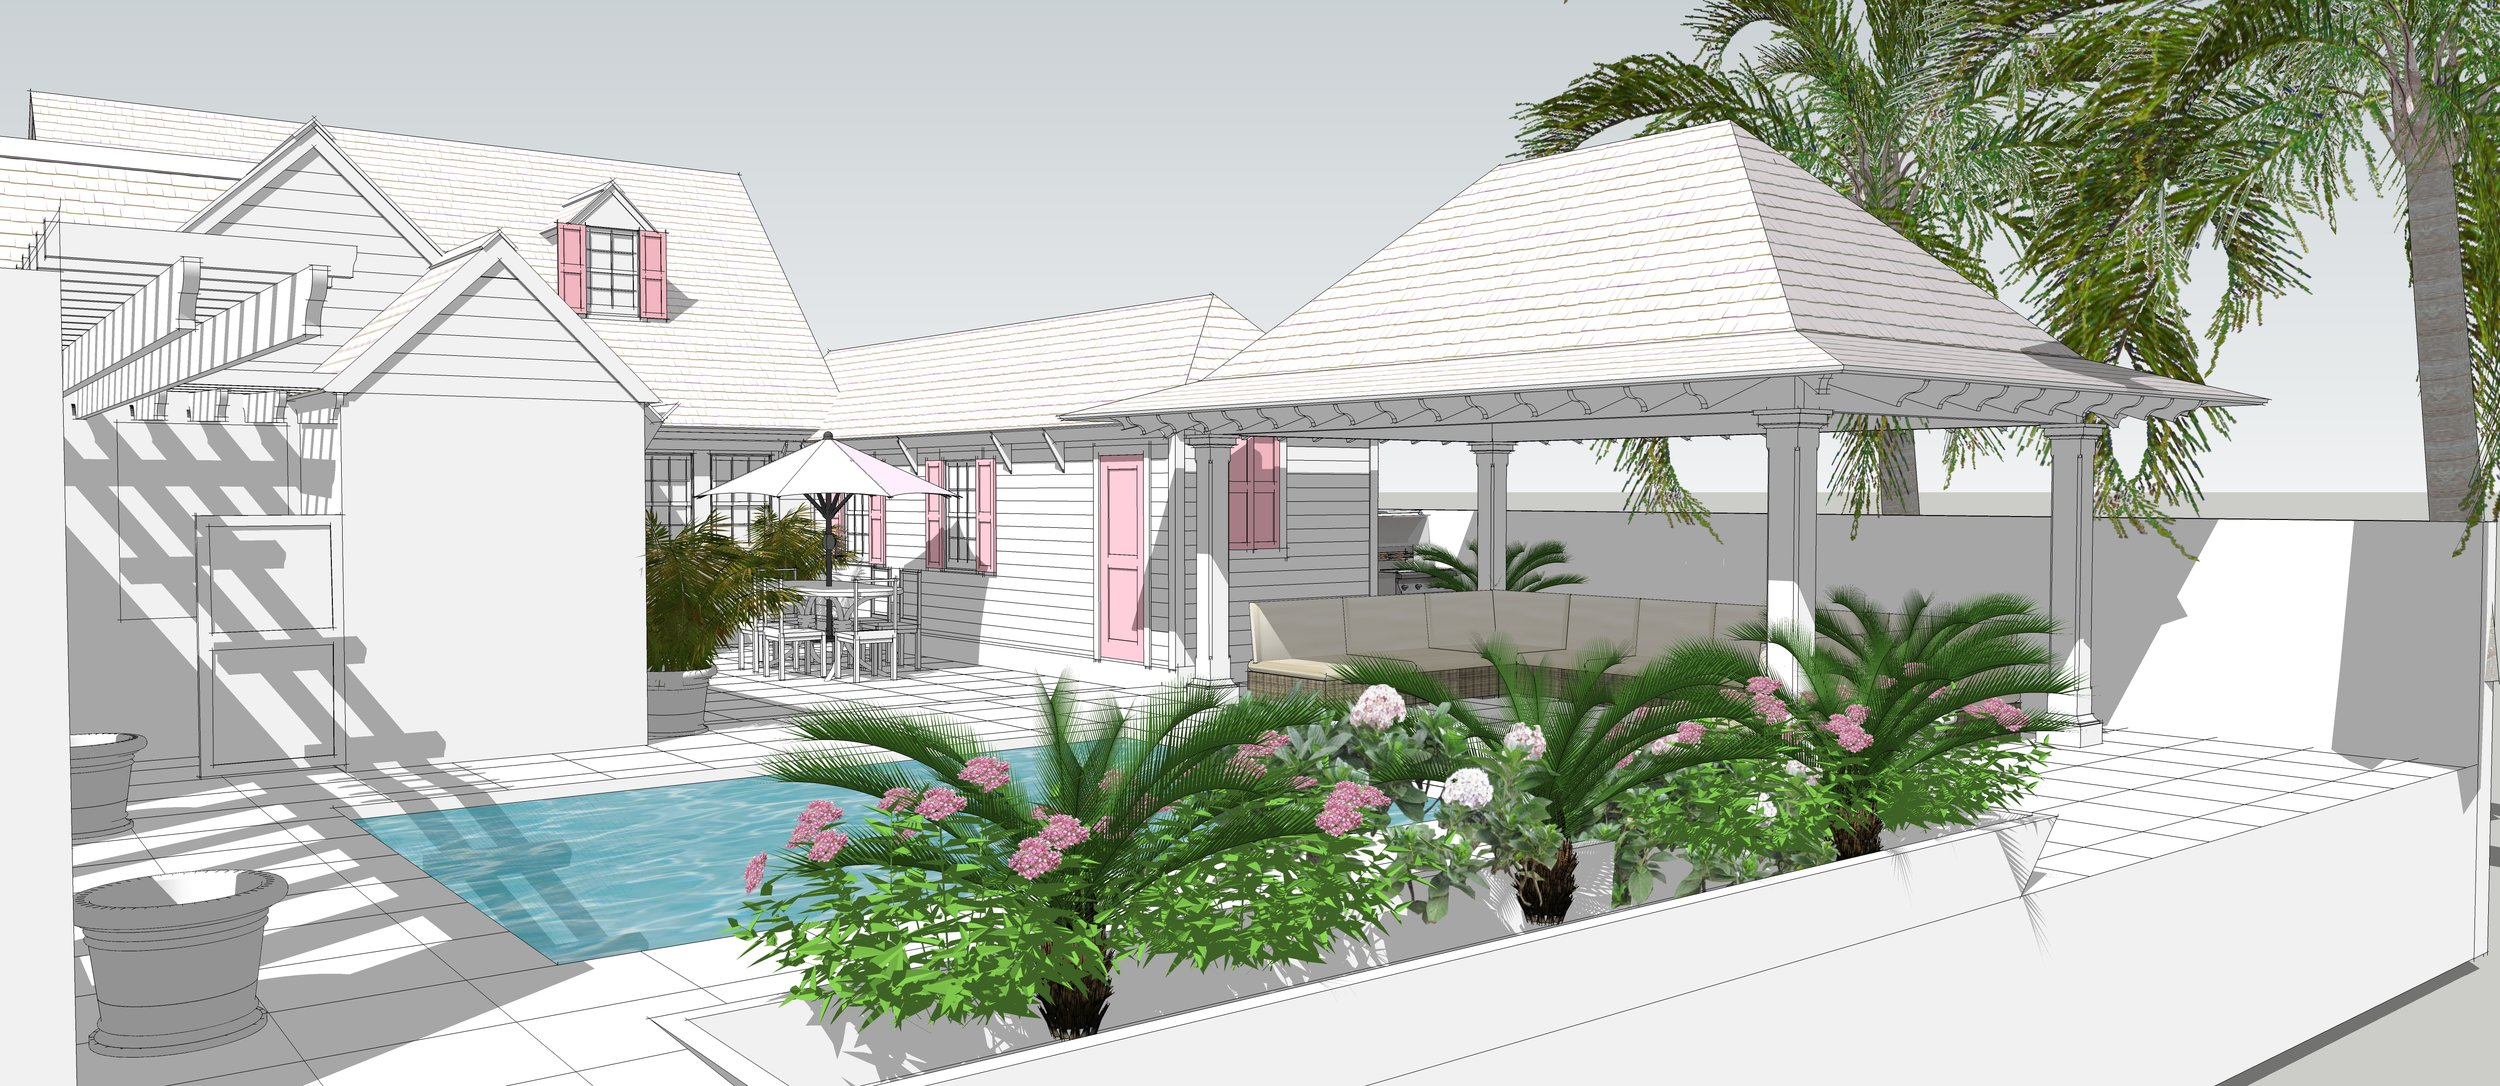 Rendering of Bahamian Vacation House